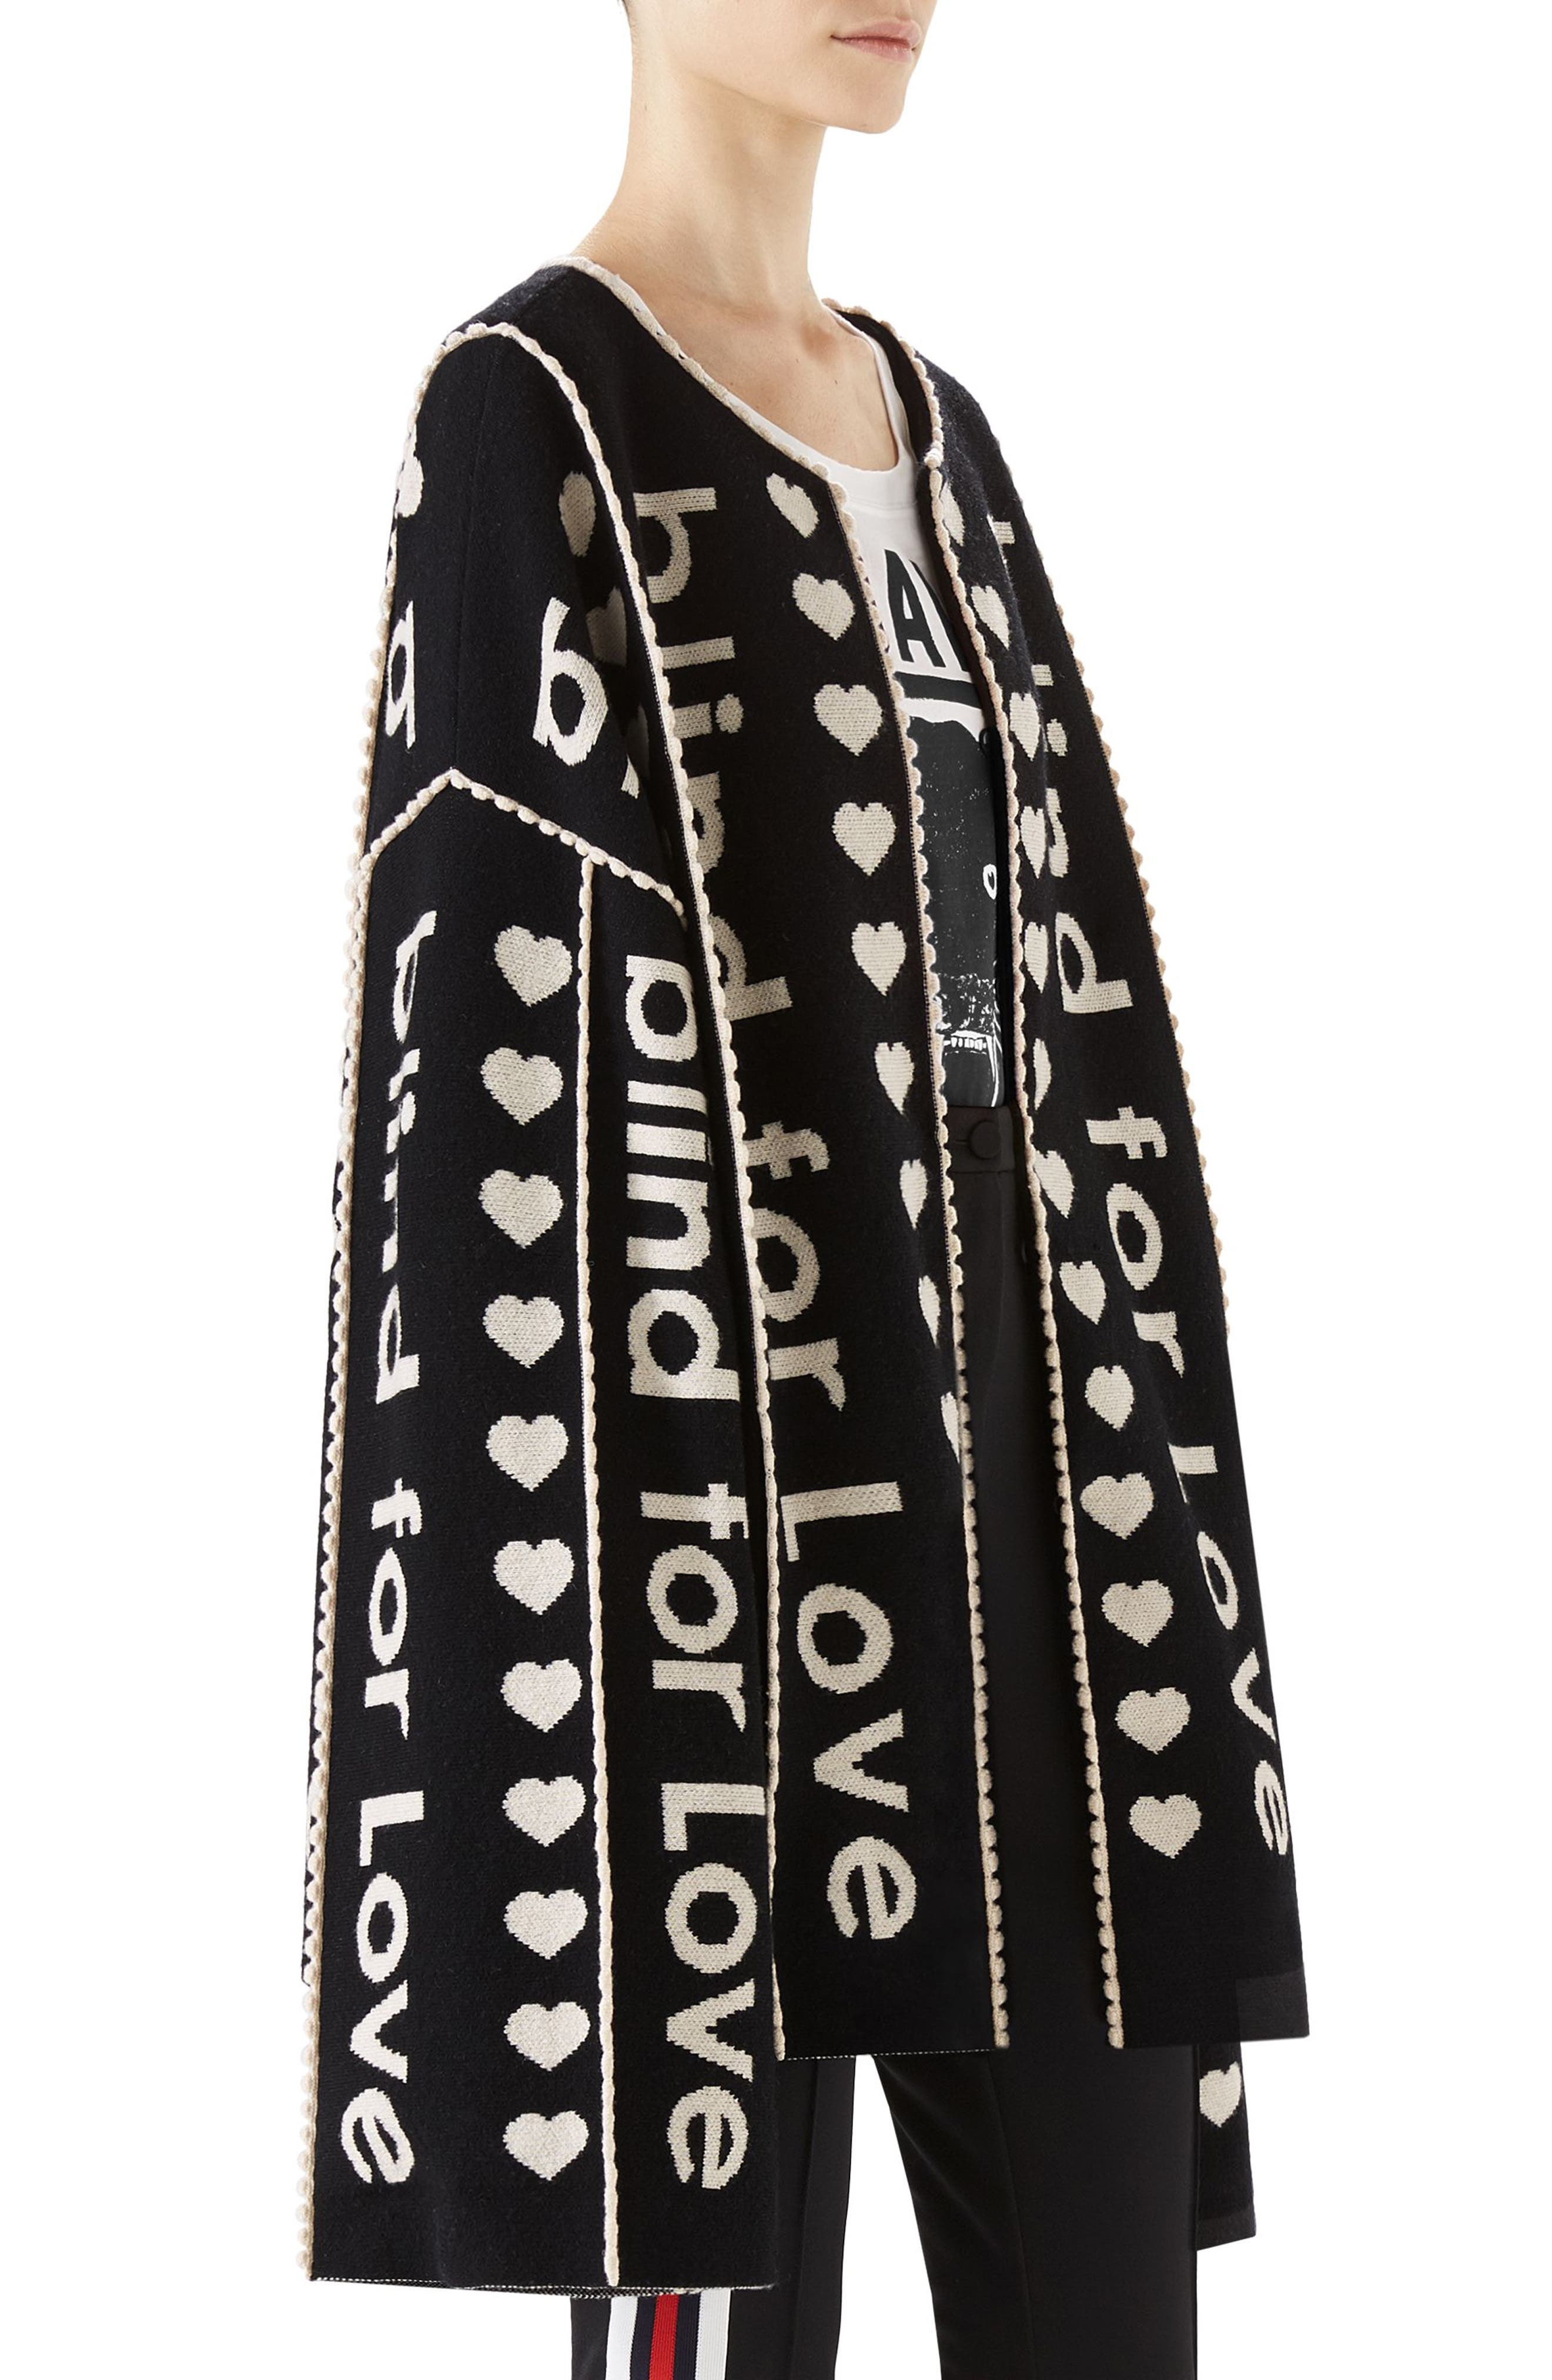 Blind for Love Jacquard Sweater Coat,                             Alternate thumbnail 3, color,                             Black